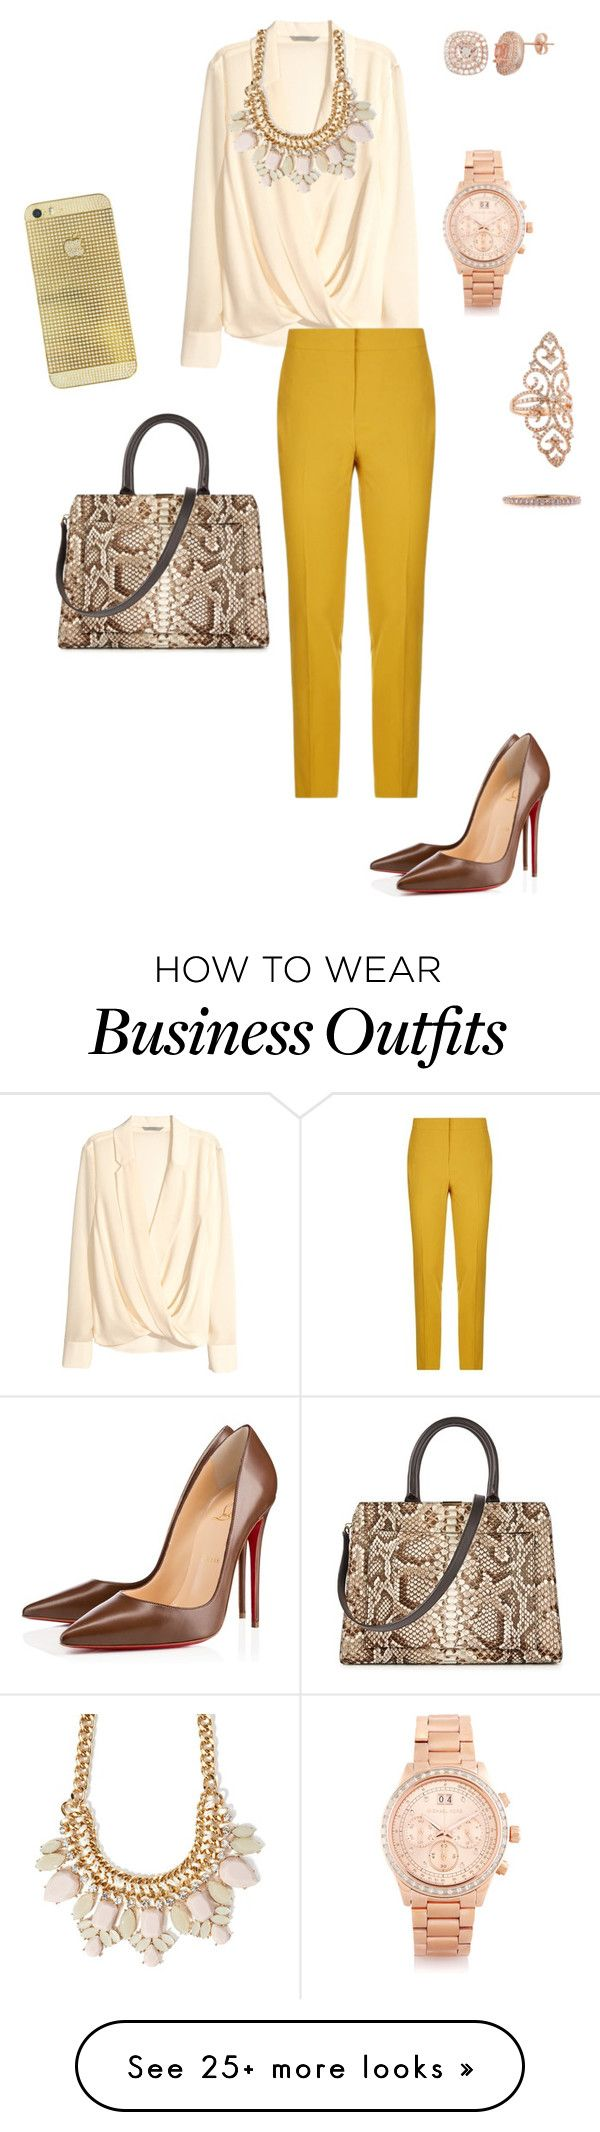 """""""Work Wear 3"""" by jerbee04 on Polyvore featuring H&M, Pinko, Forever 21, Christian Louboutin, Victoria Beckham, Michael Kors and Mark Broumand"""